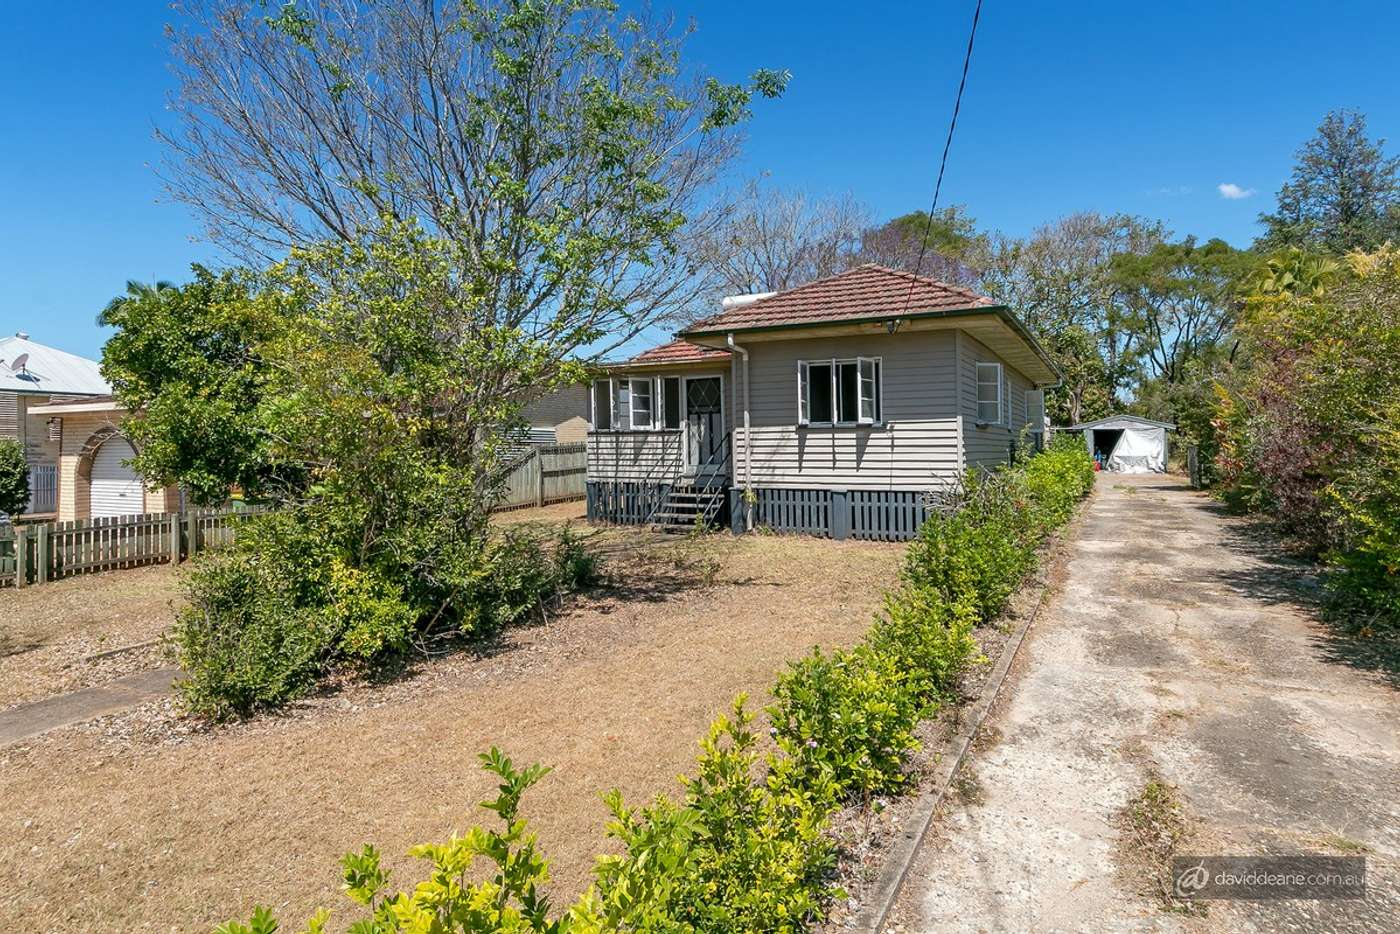 Main view of Homely house listing, 13 Bray Road, Lawnton QLD 4501